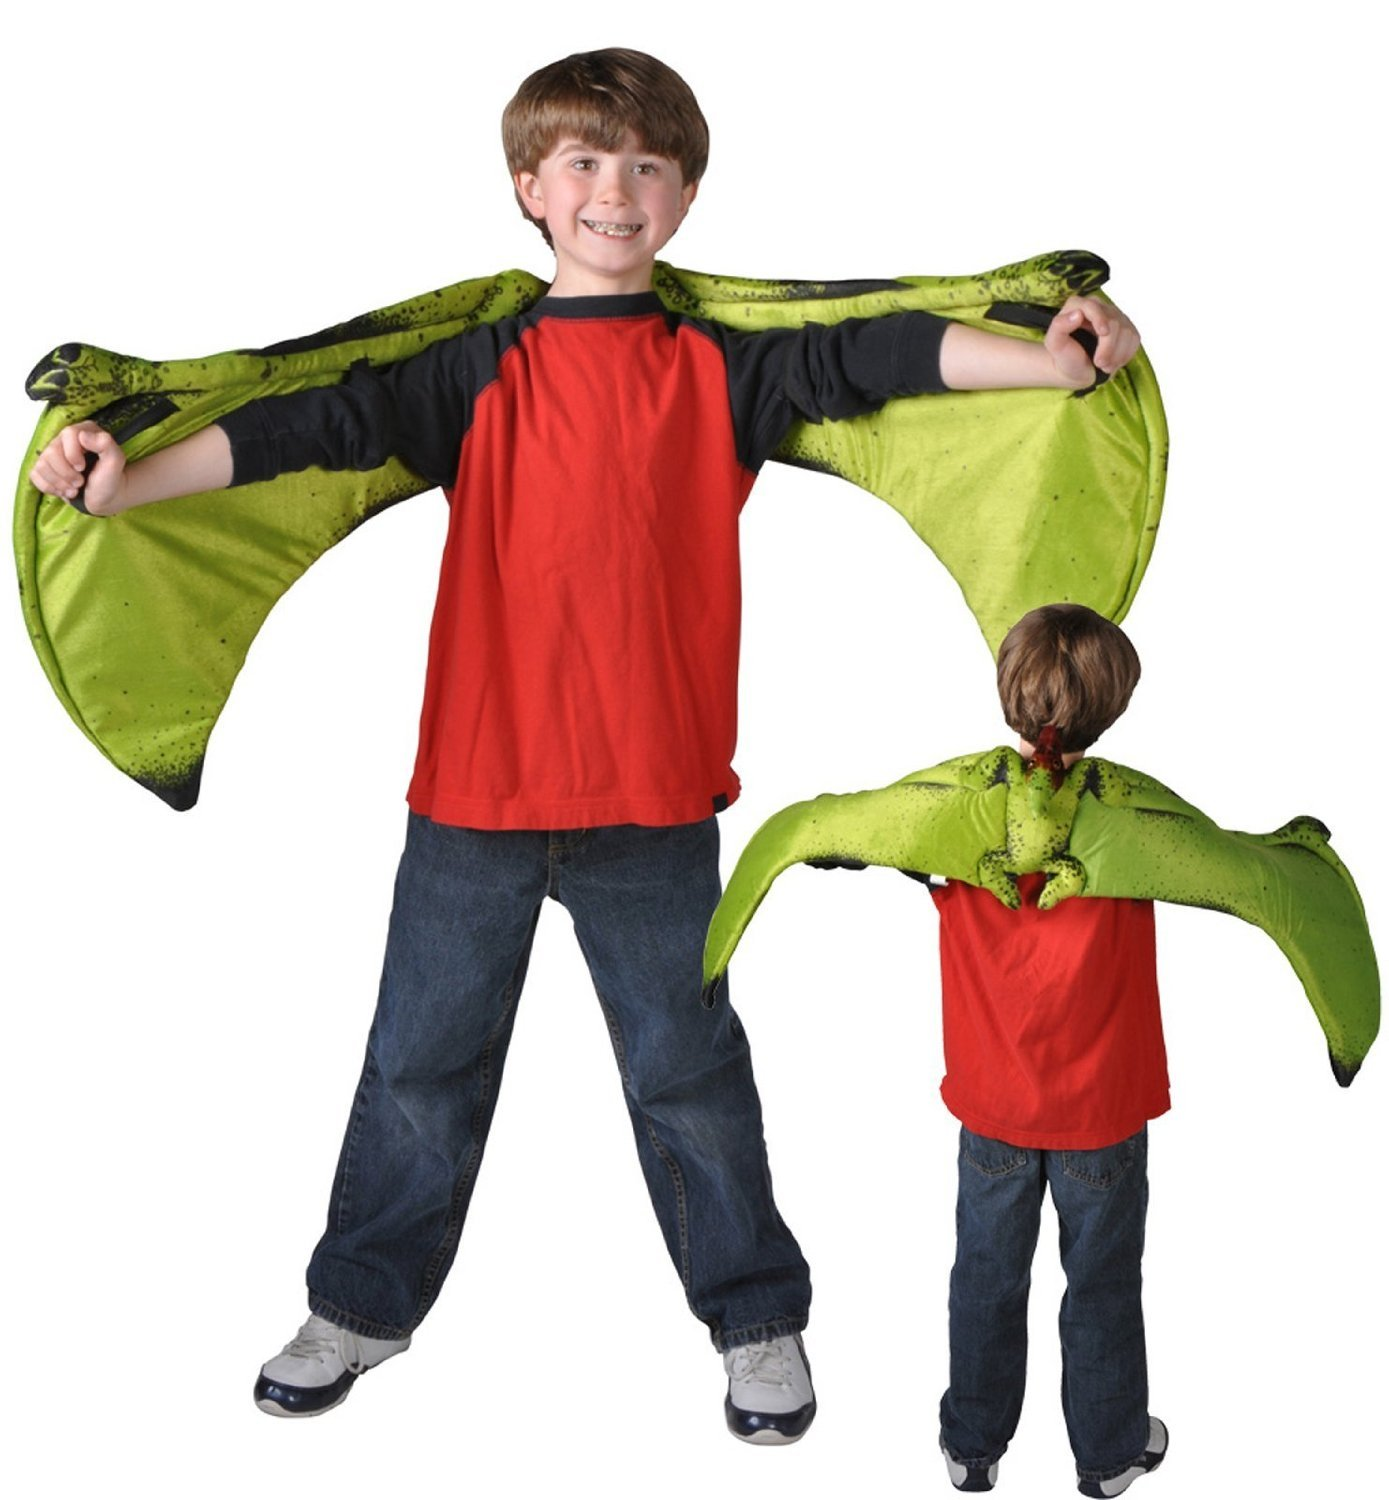 Pteranodon Dinosaur Plush Wings Kids Größe: Fits Most with 47 inch Wingspan by RINCO